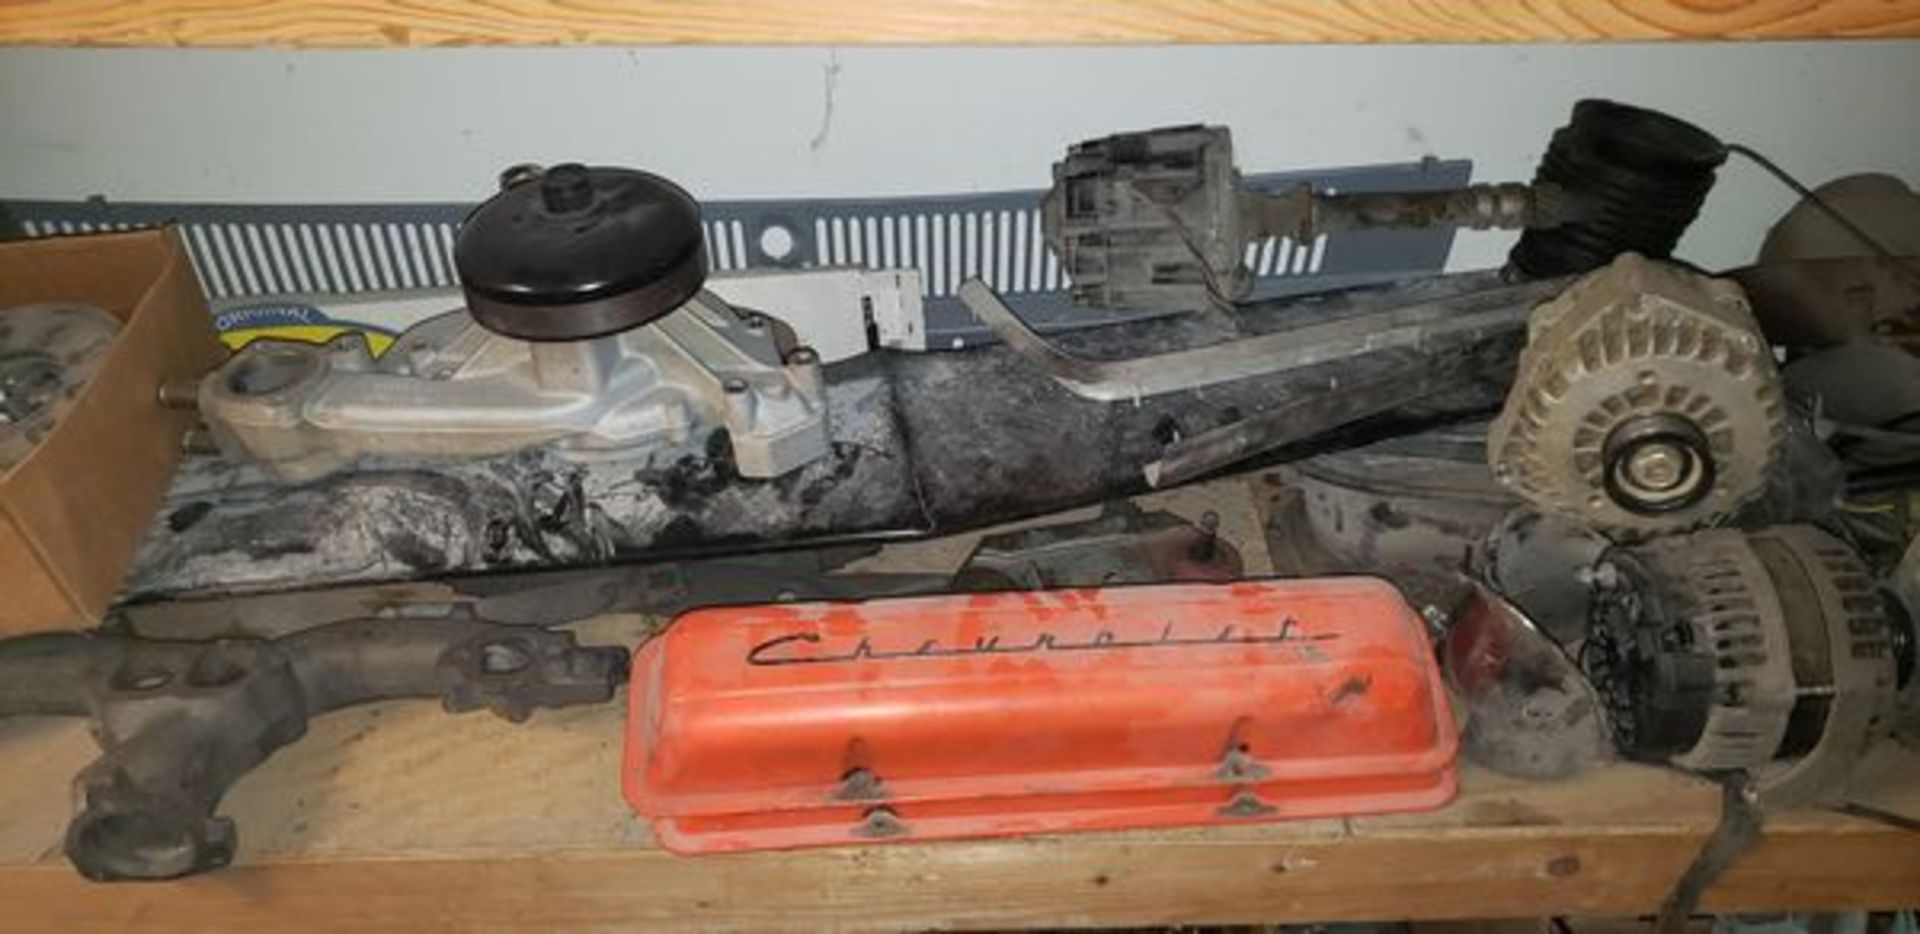 LOT OF ASSORTED CAR PARTS ON 3 SHELVES AND FLOOR - Image 8 of 12